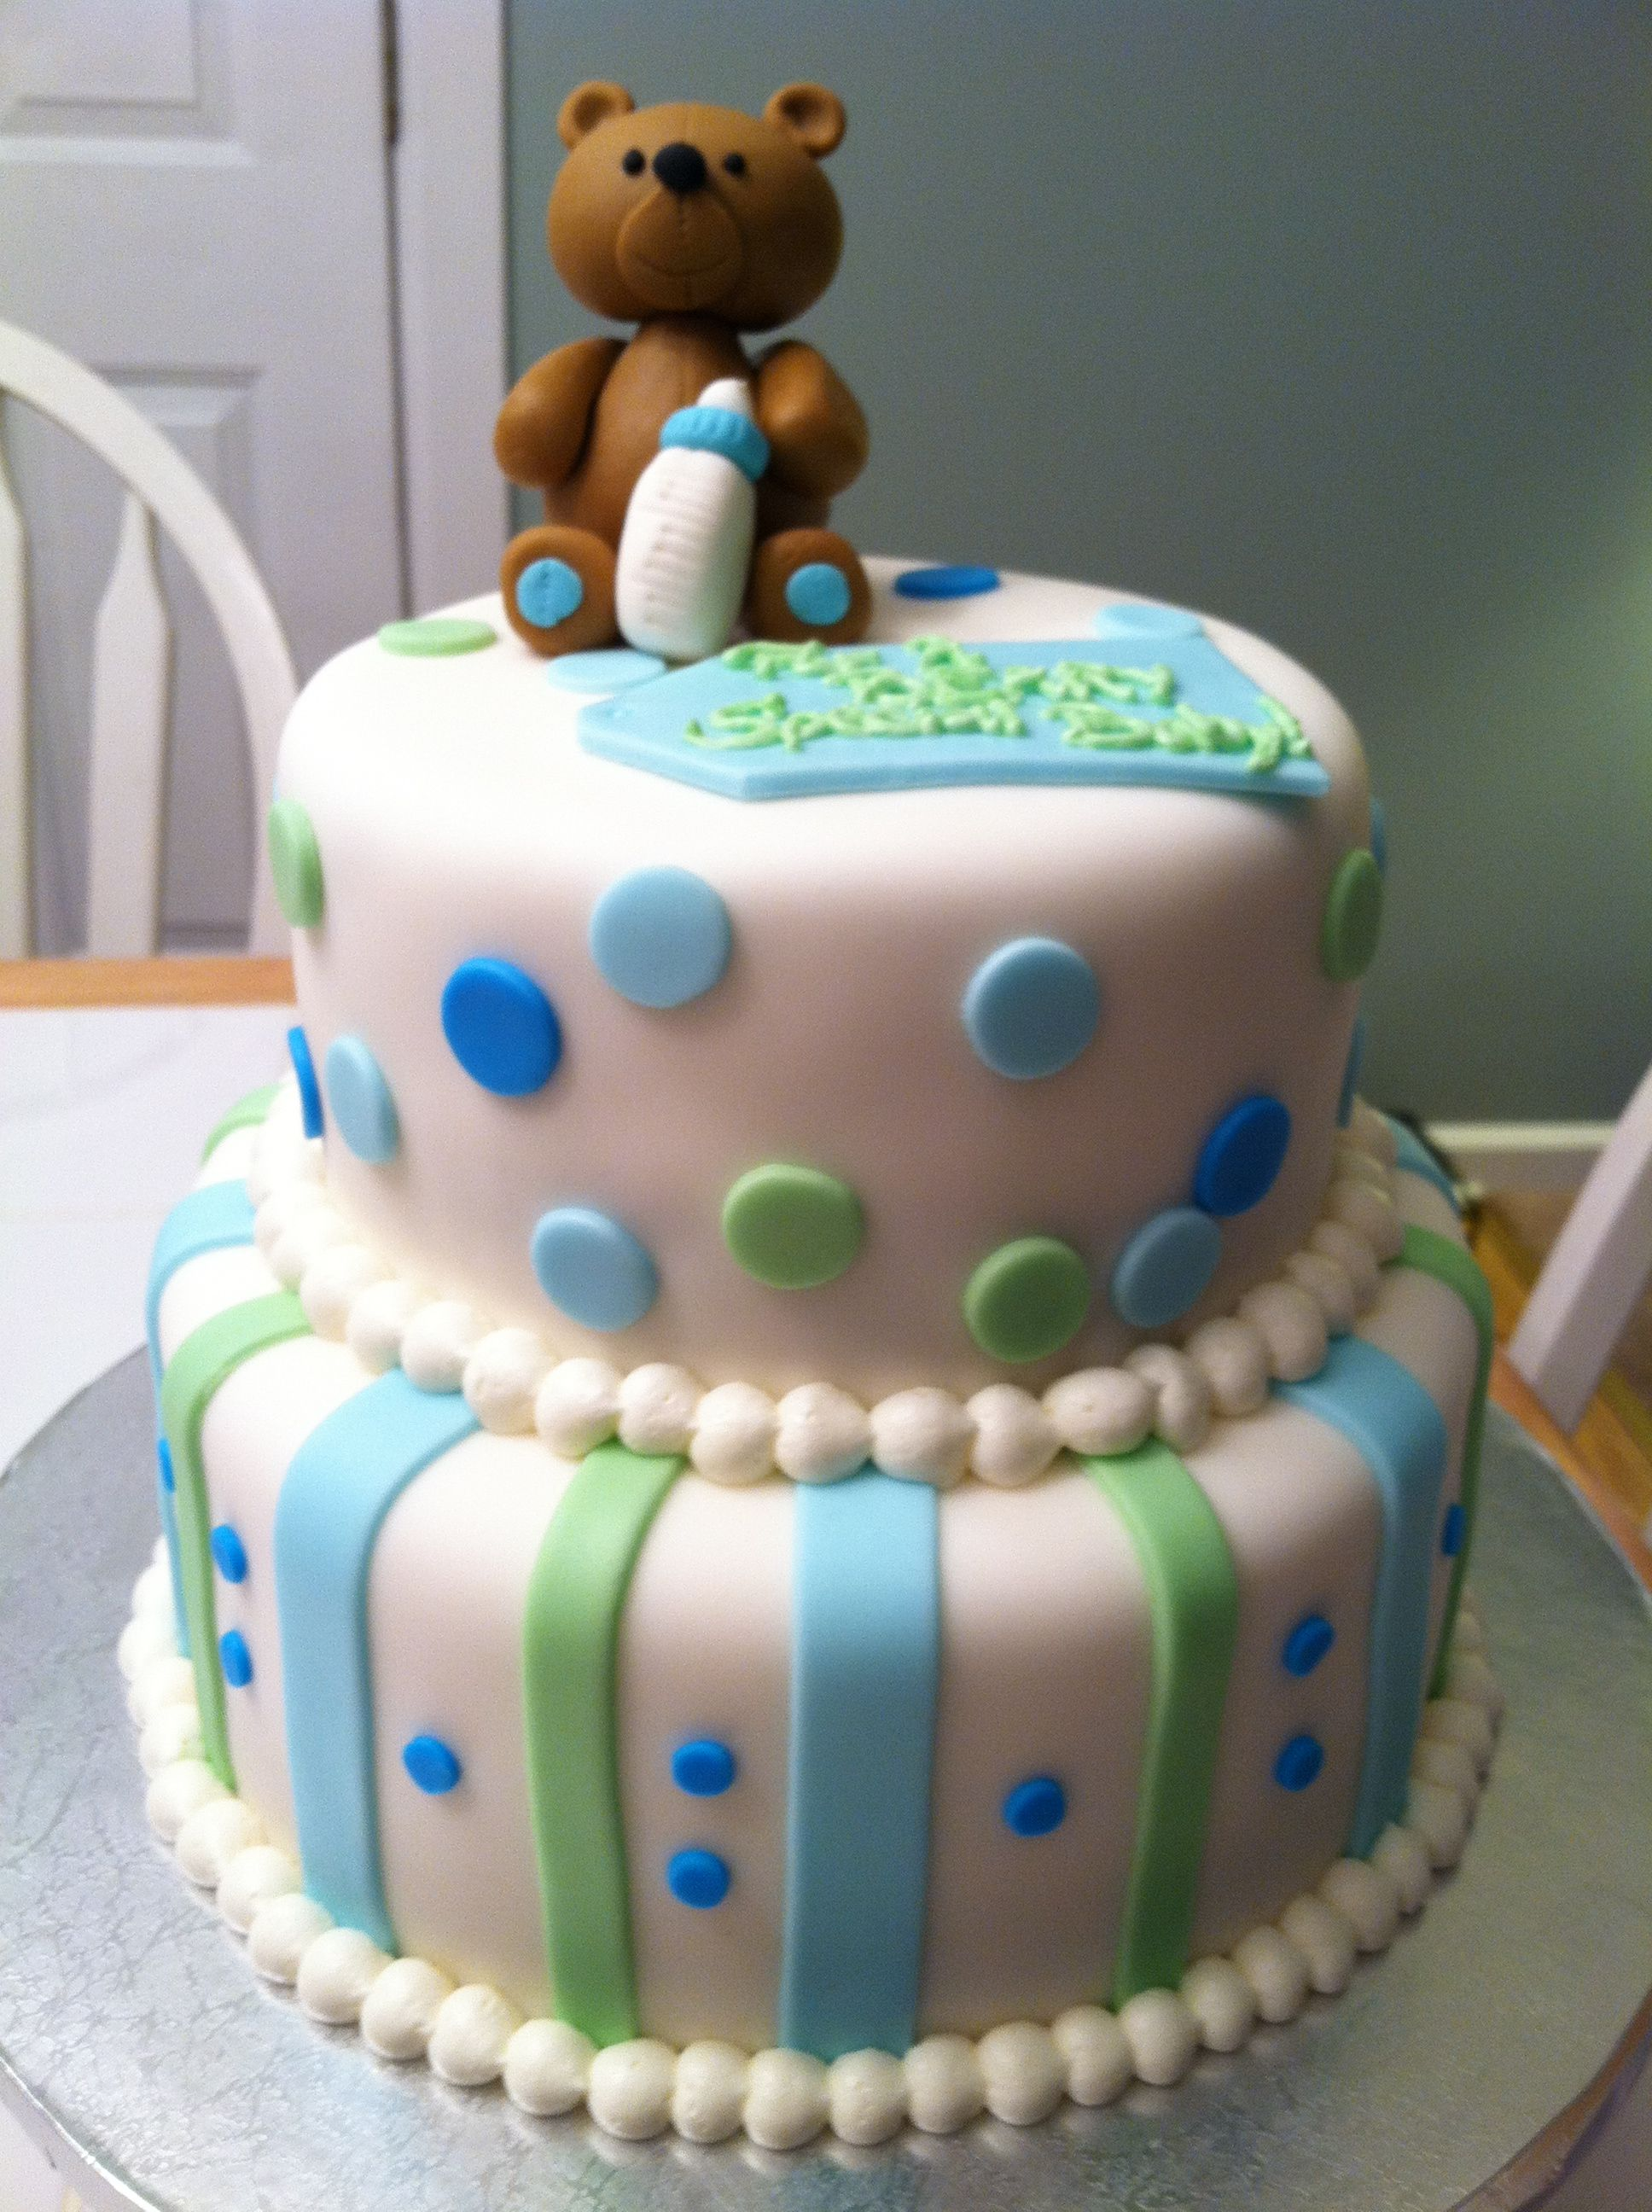 Teddy Bear Baby Shower Cake! J-Cakes!! Pinterest ...